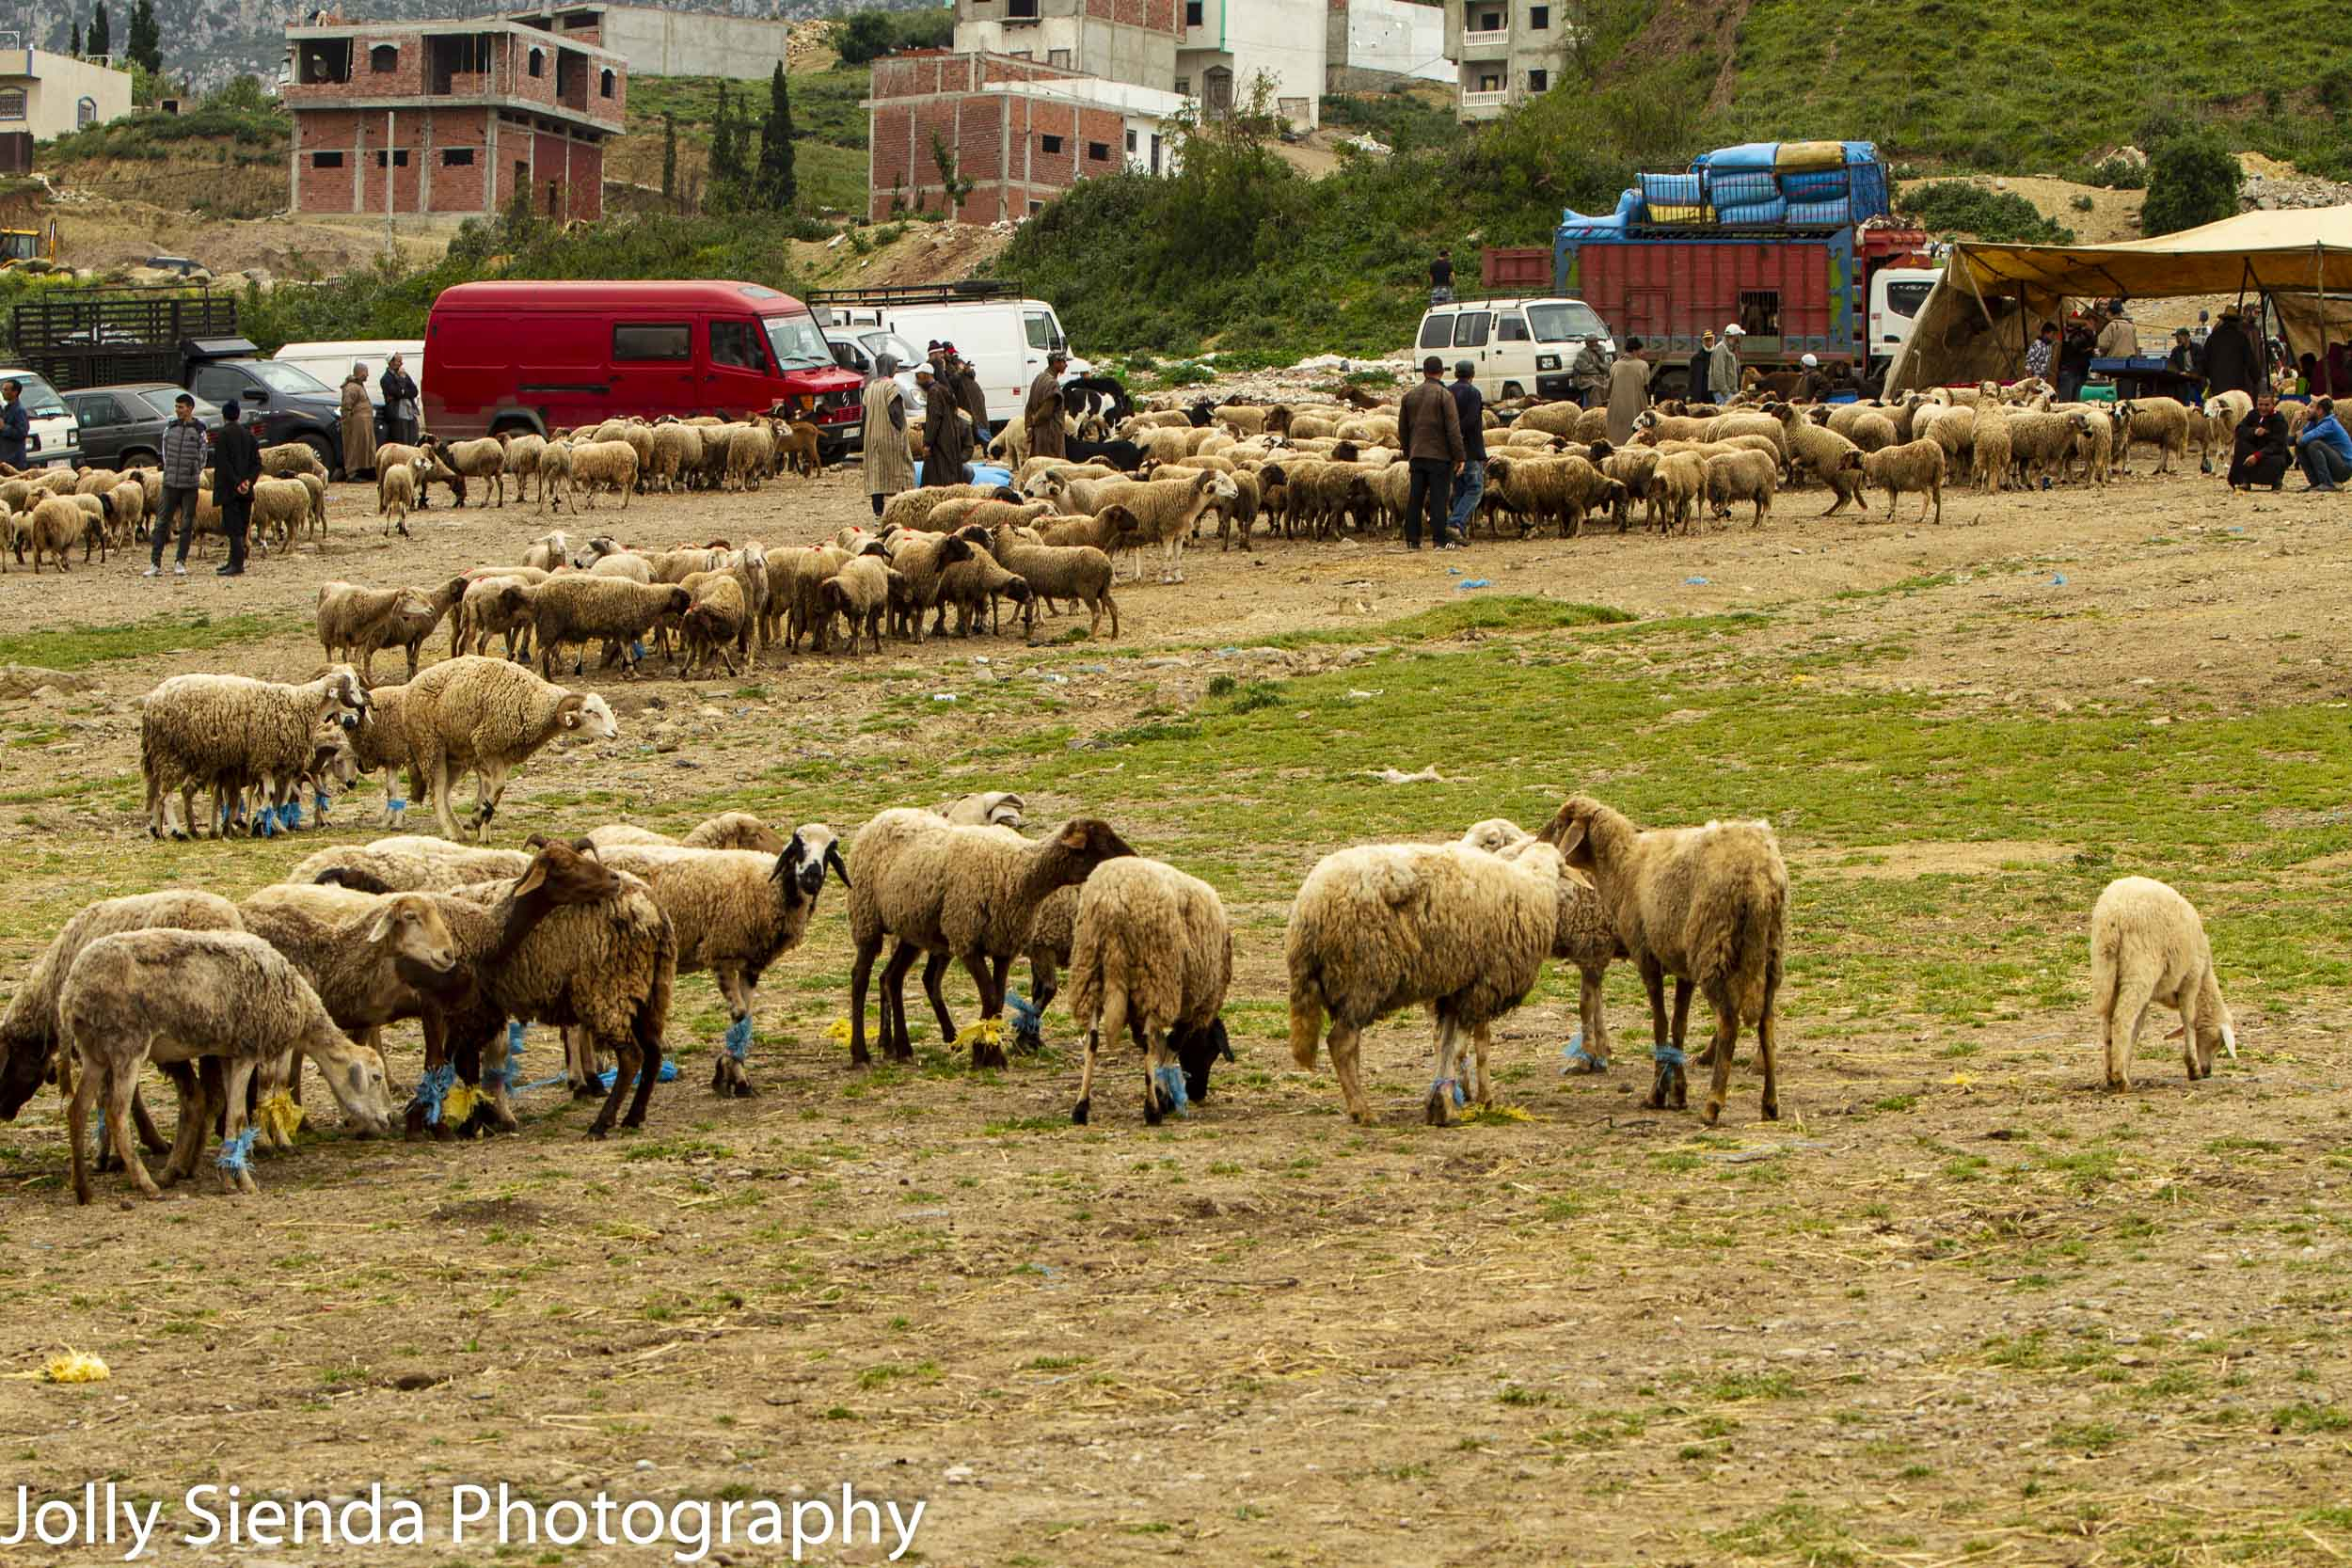 Sheep for sale at a market